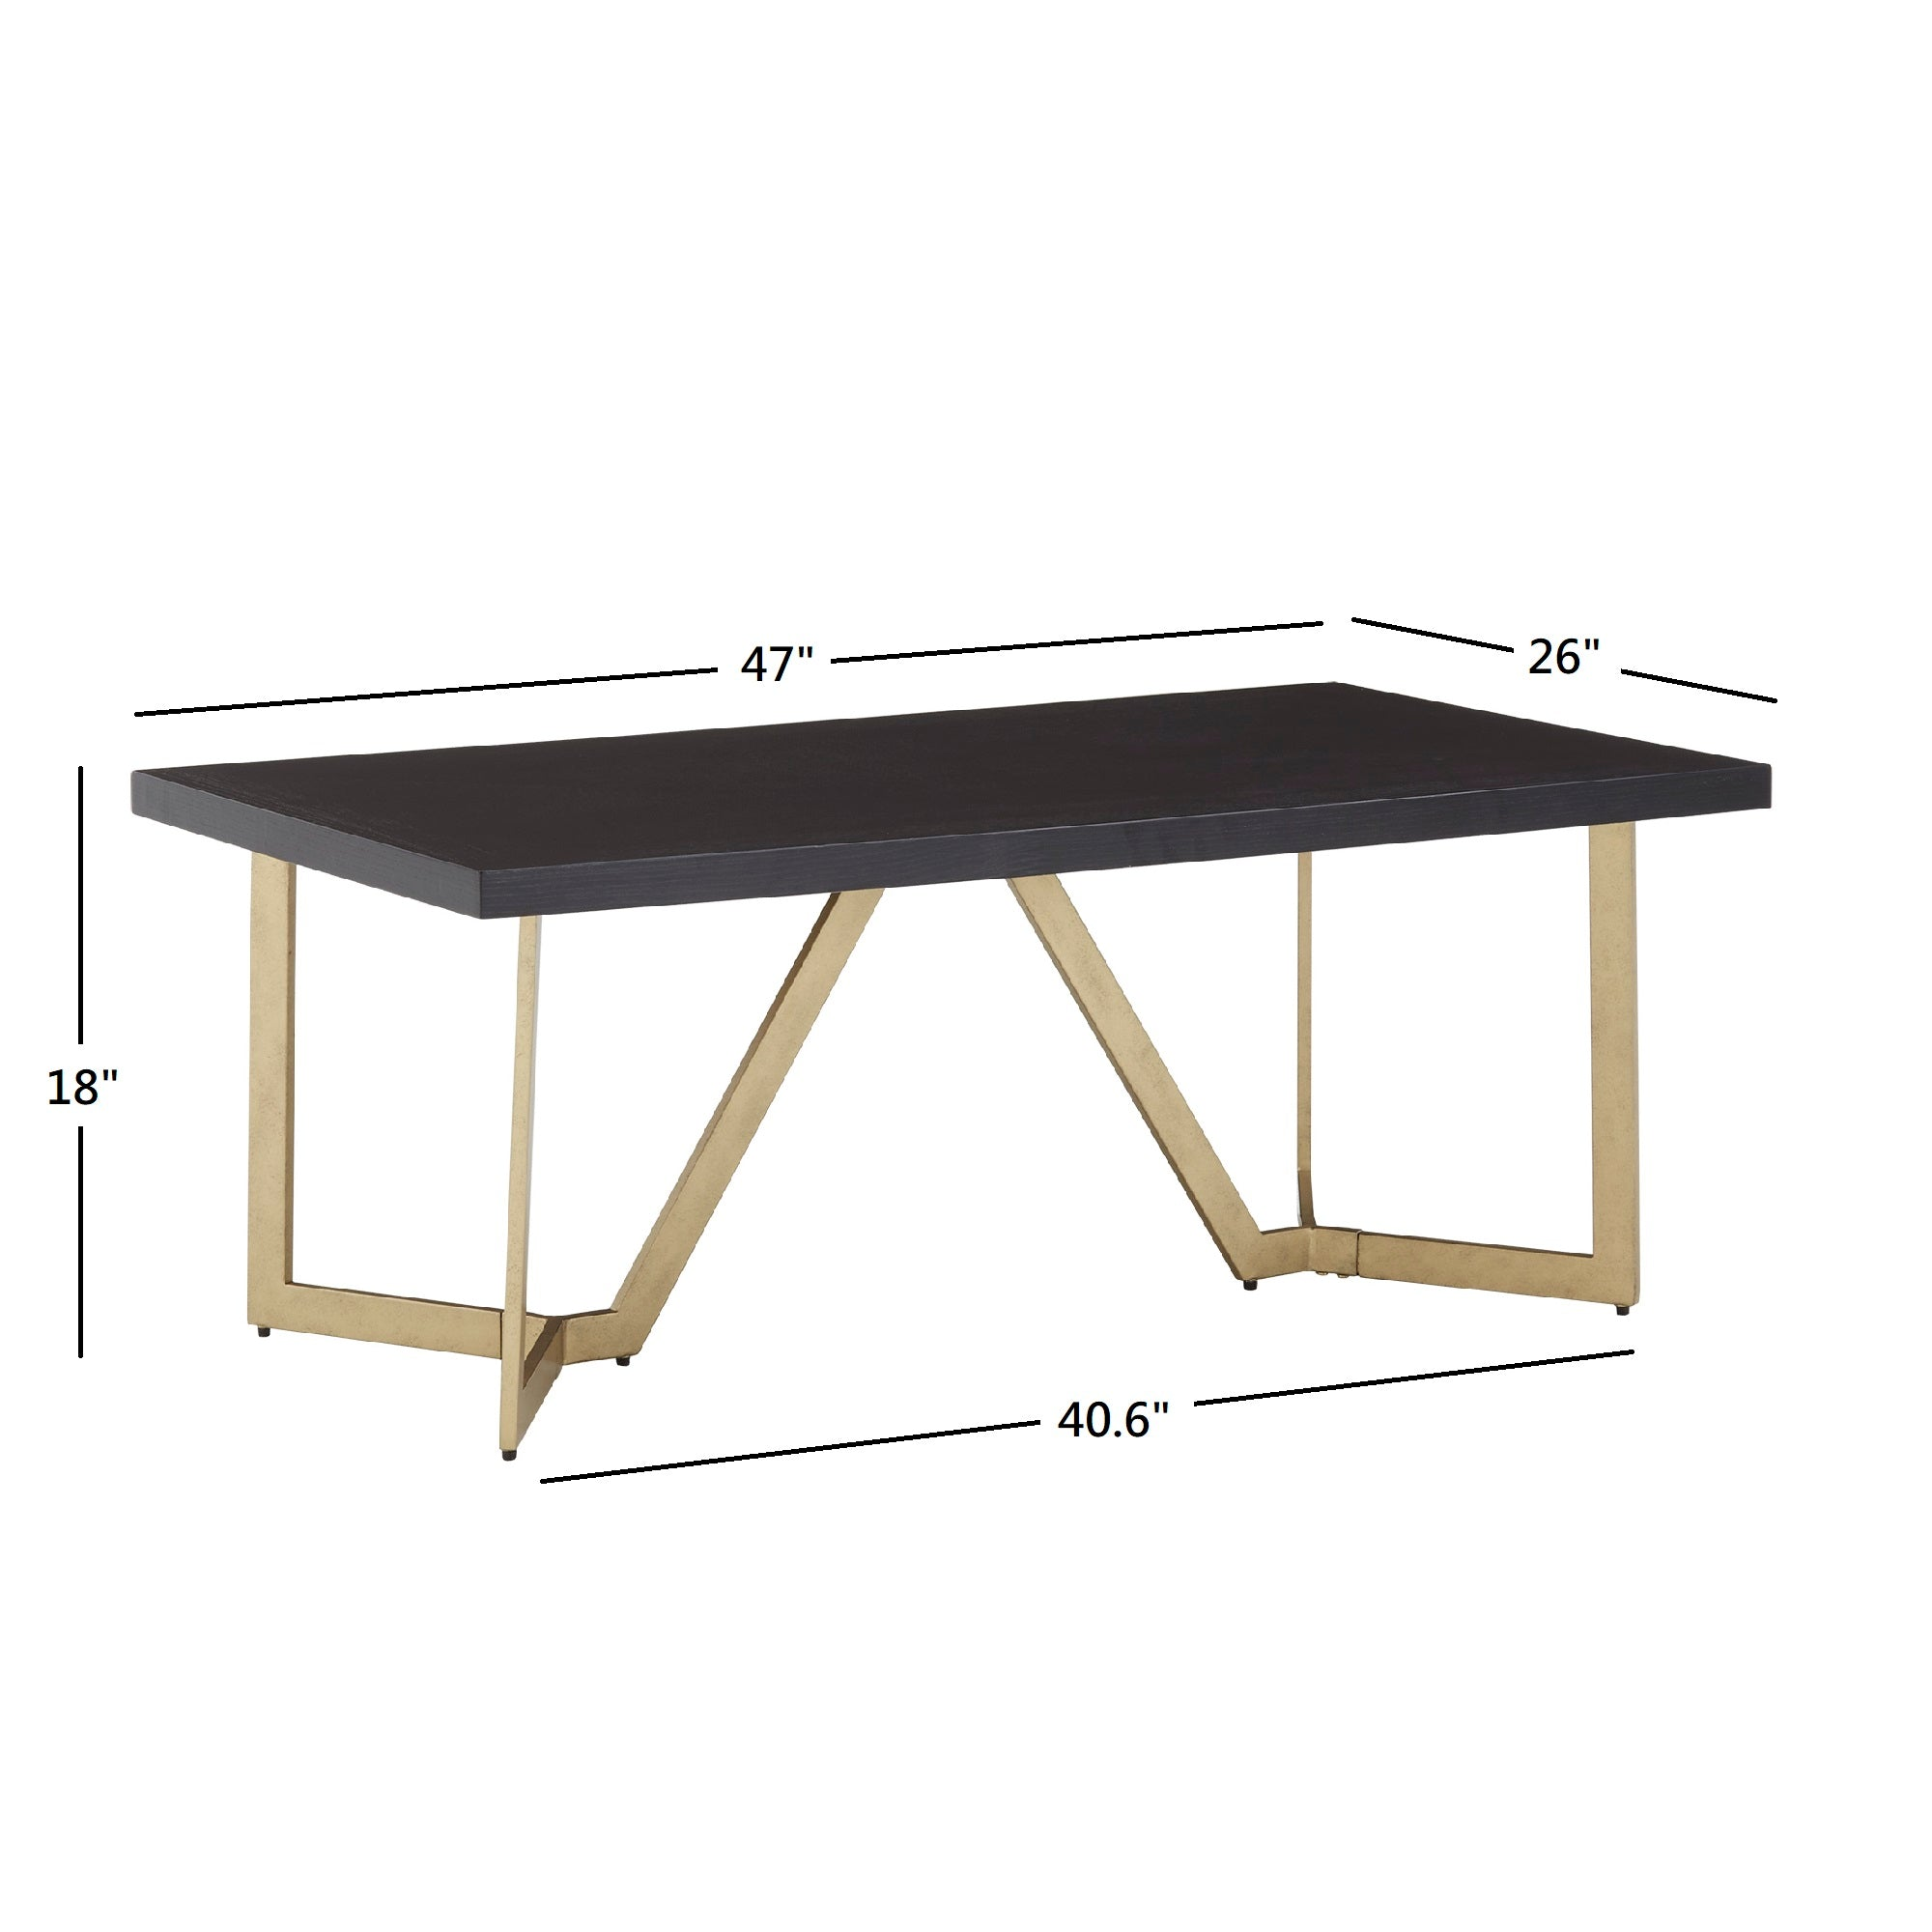 Black and Gold Metal Base Table - Coffee Table